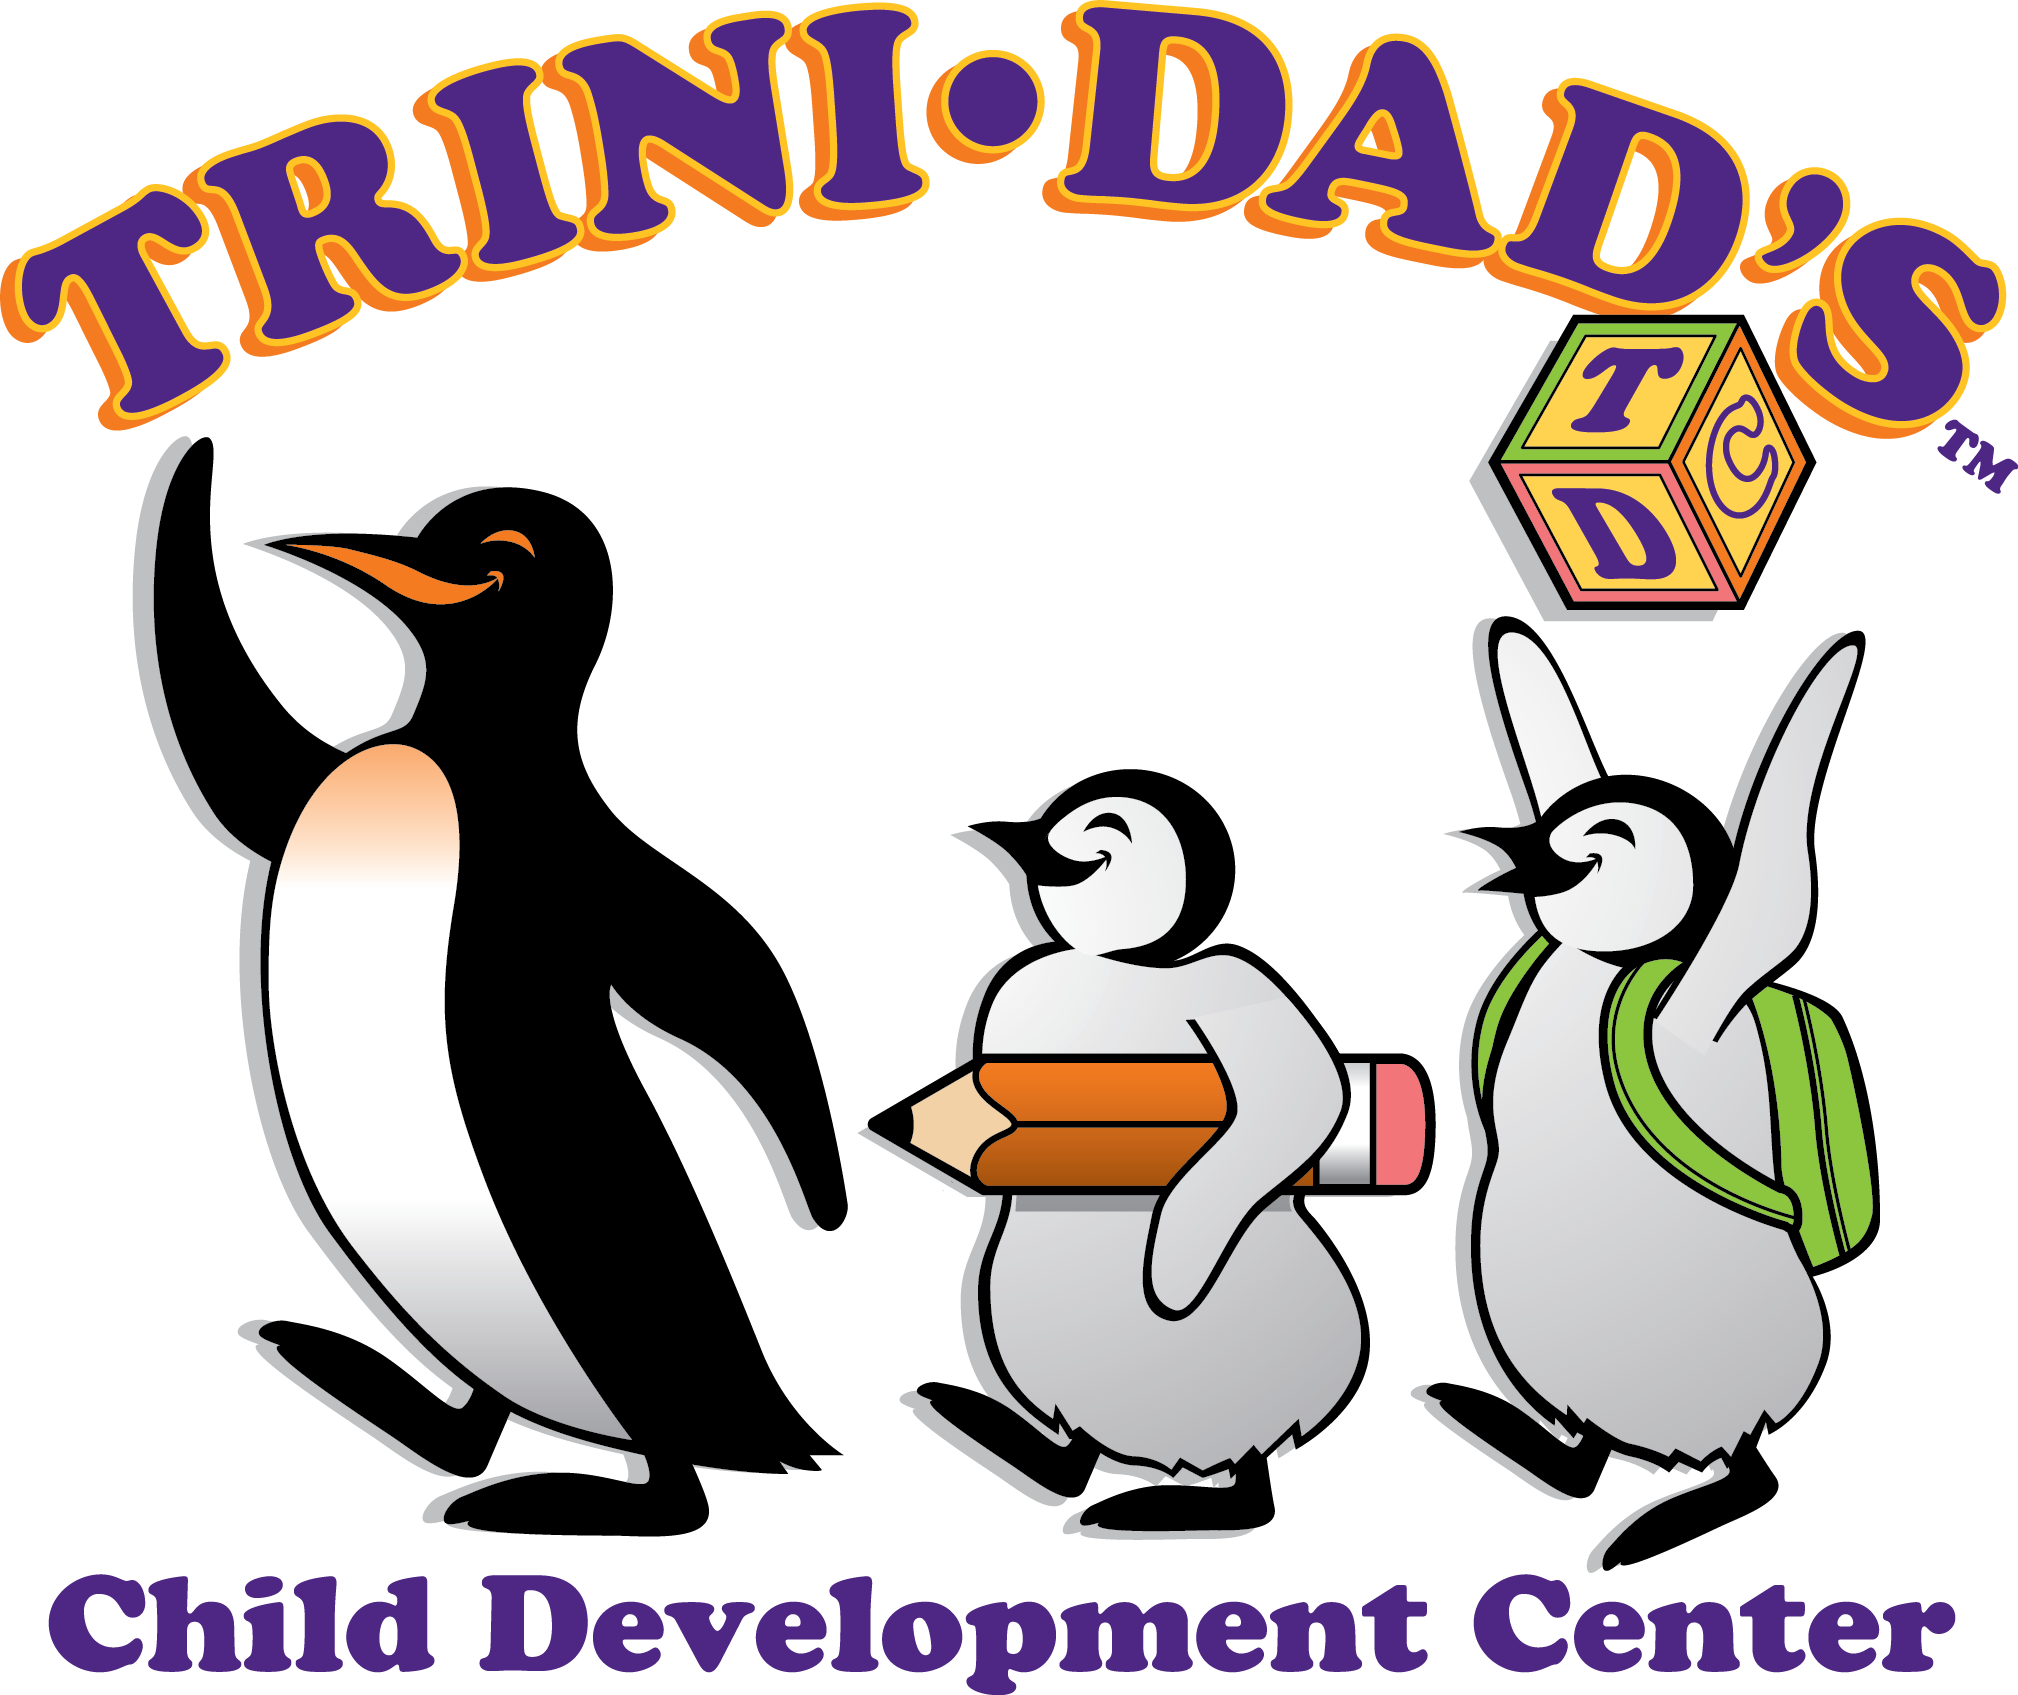 Trini-Dad's Child Development Center